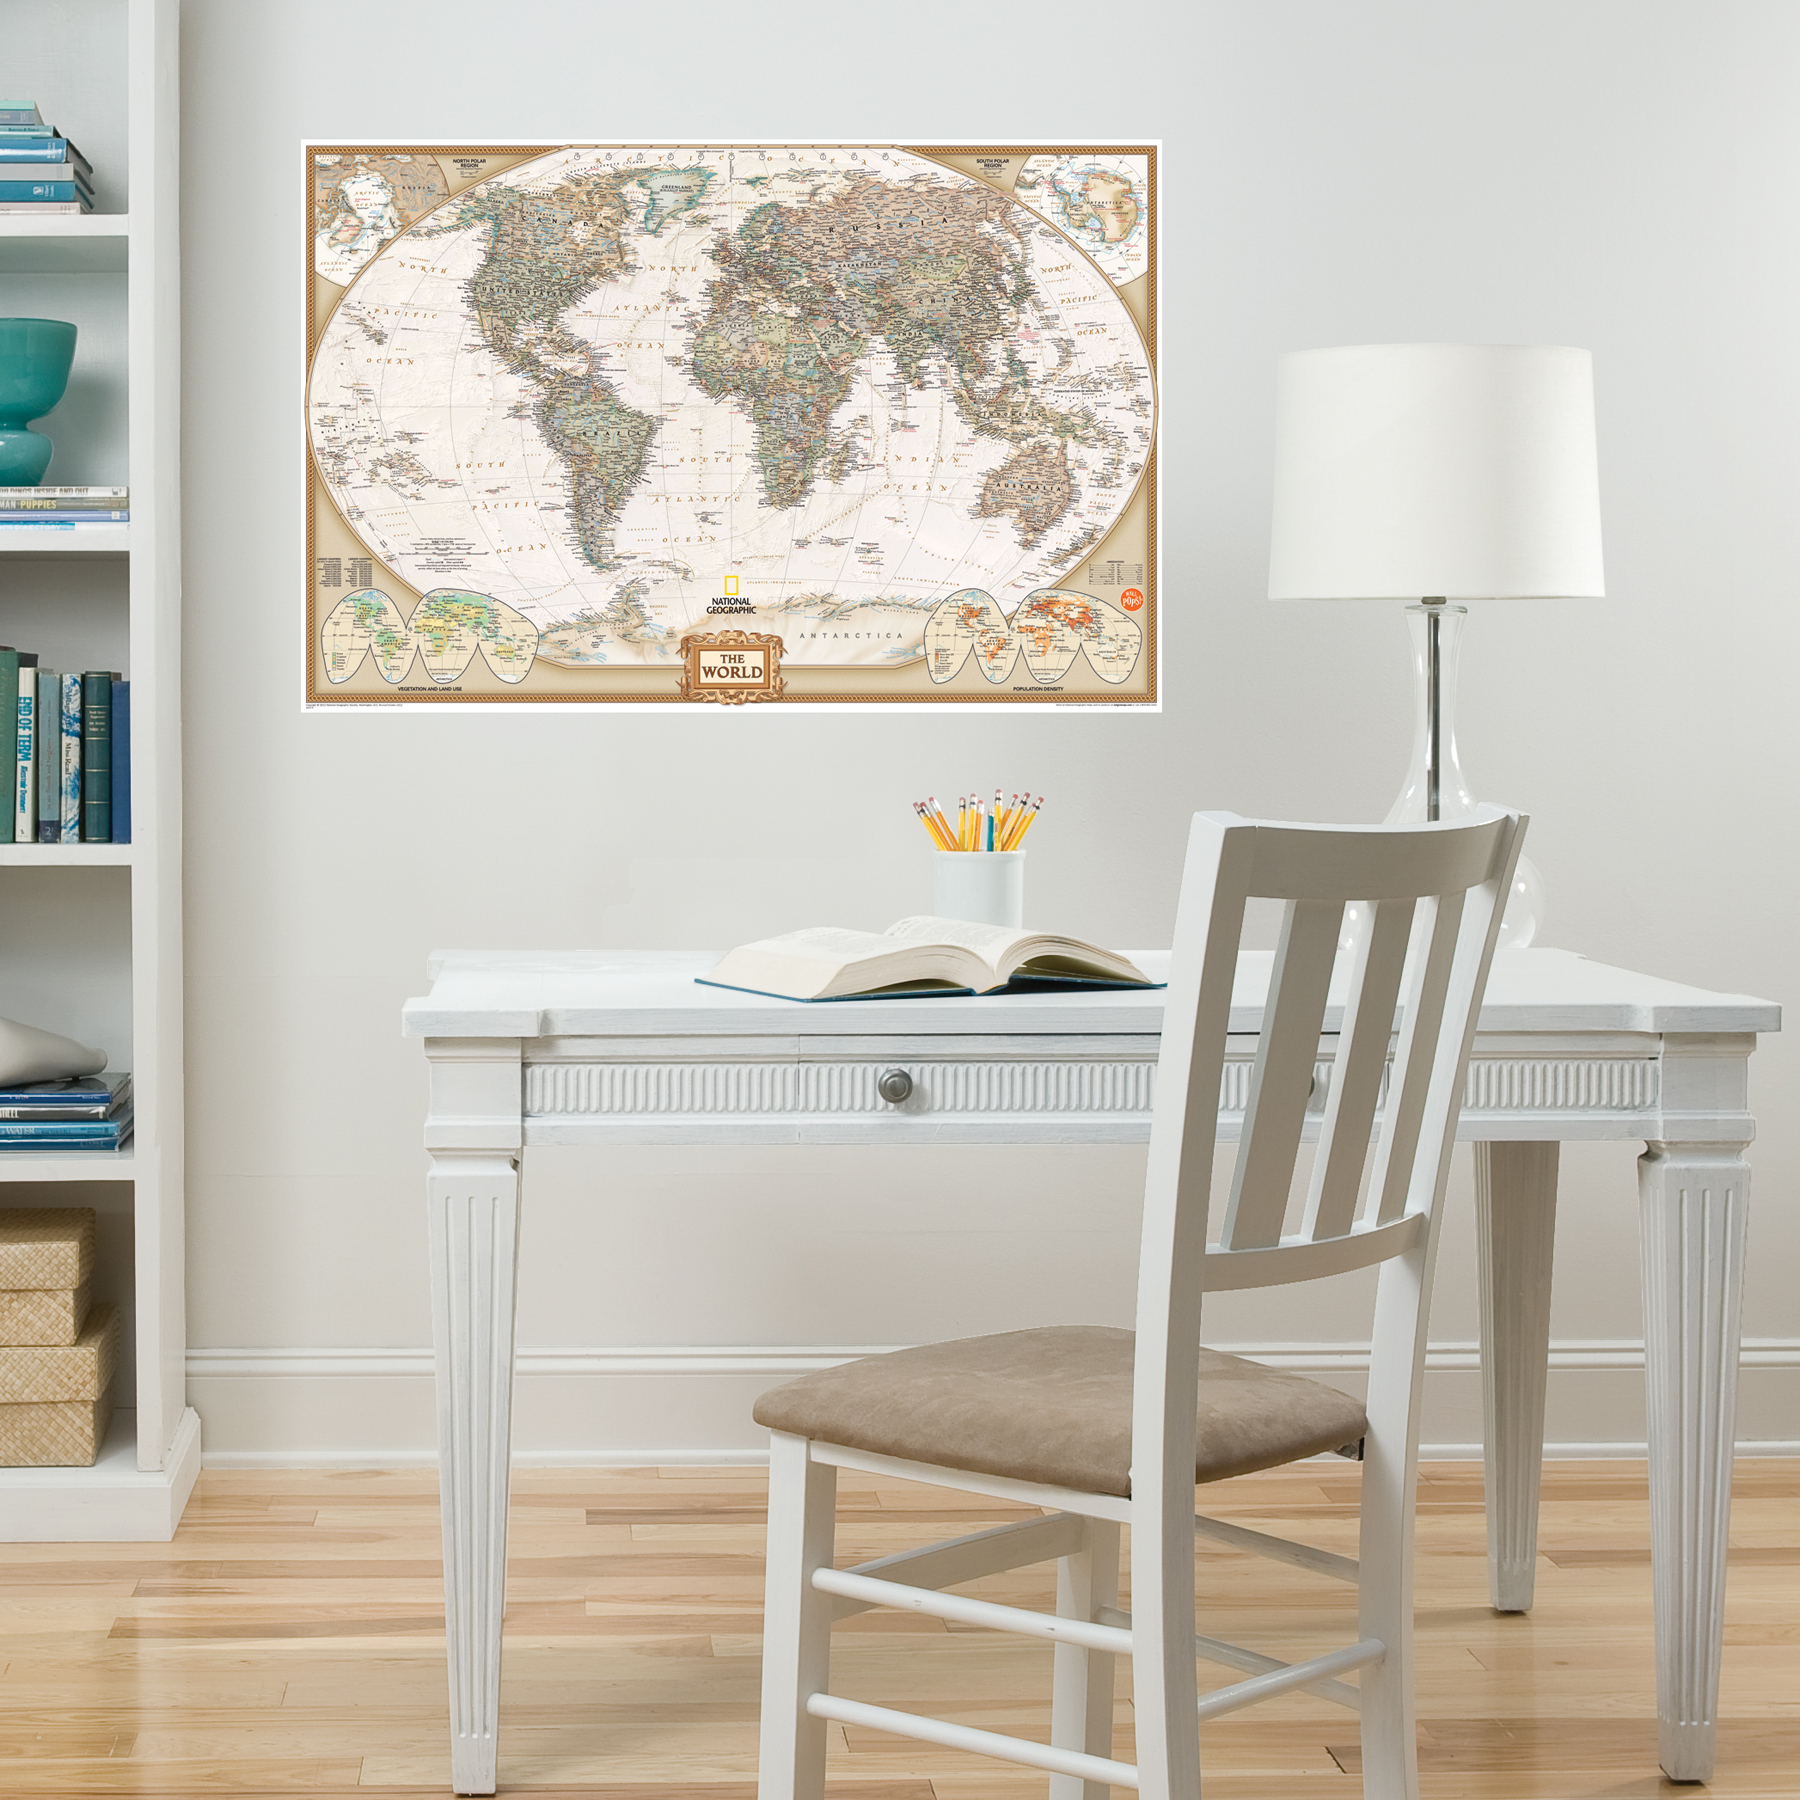 National Geographic Map of the World for a Classroom